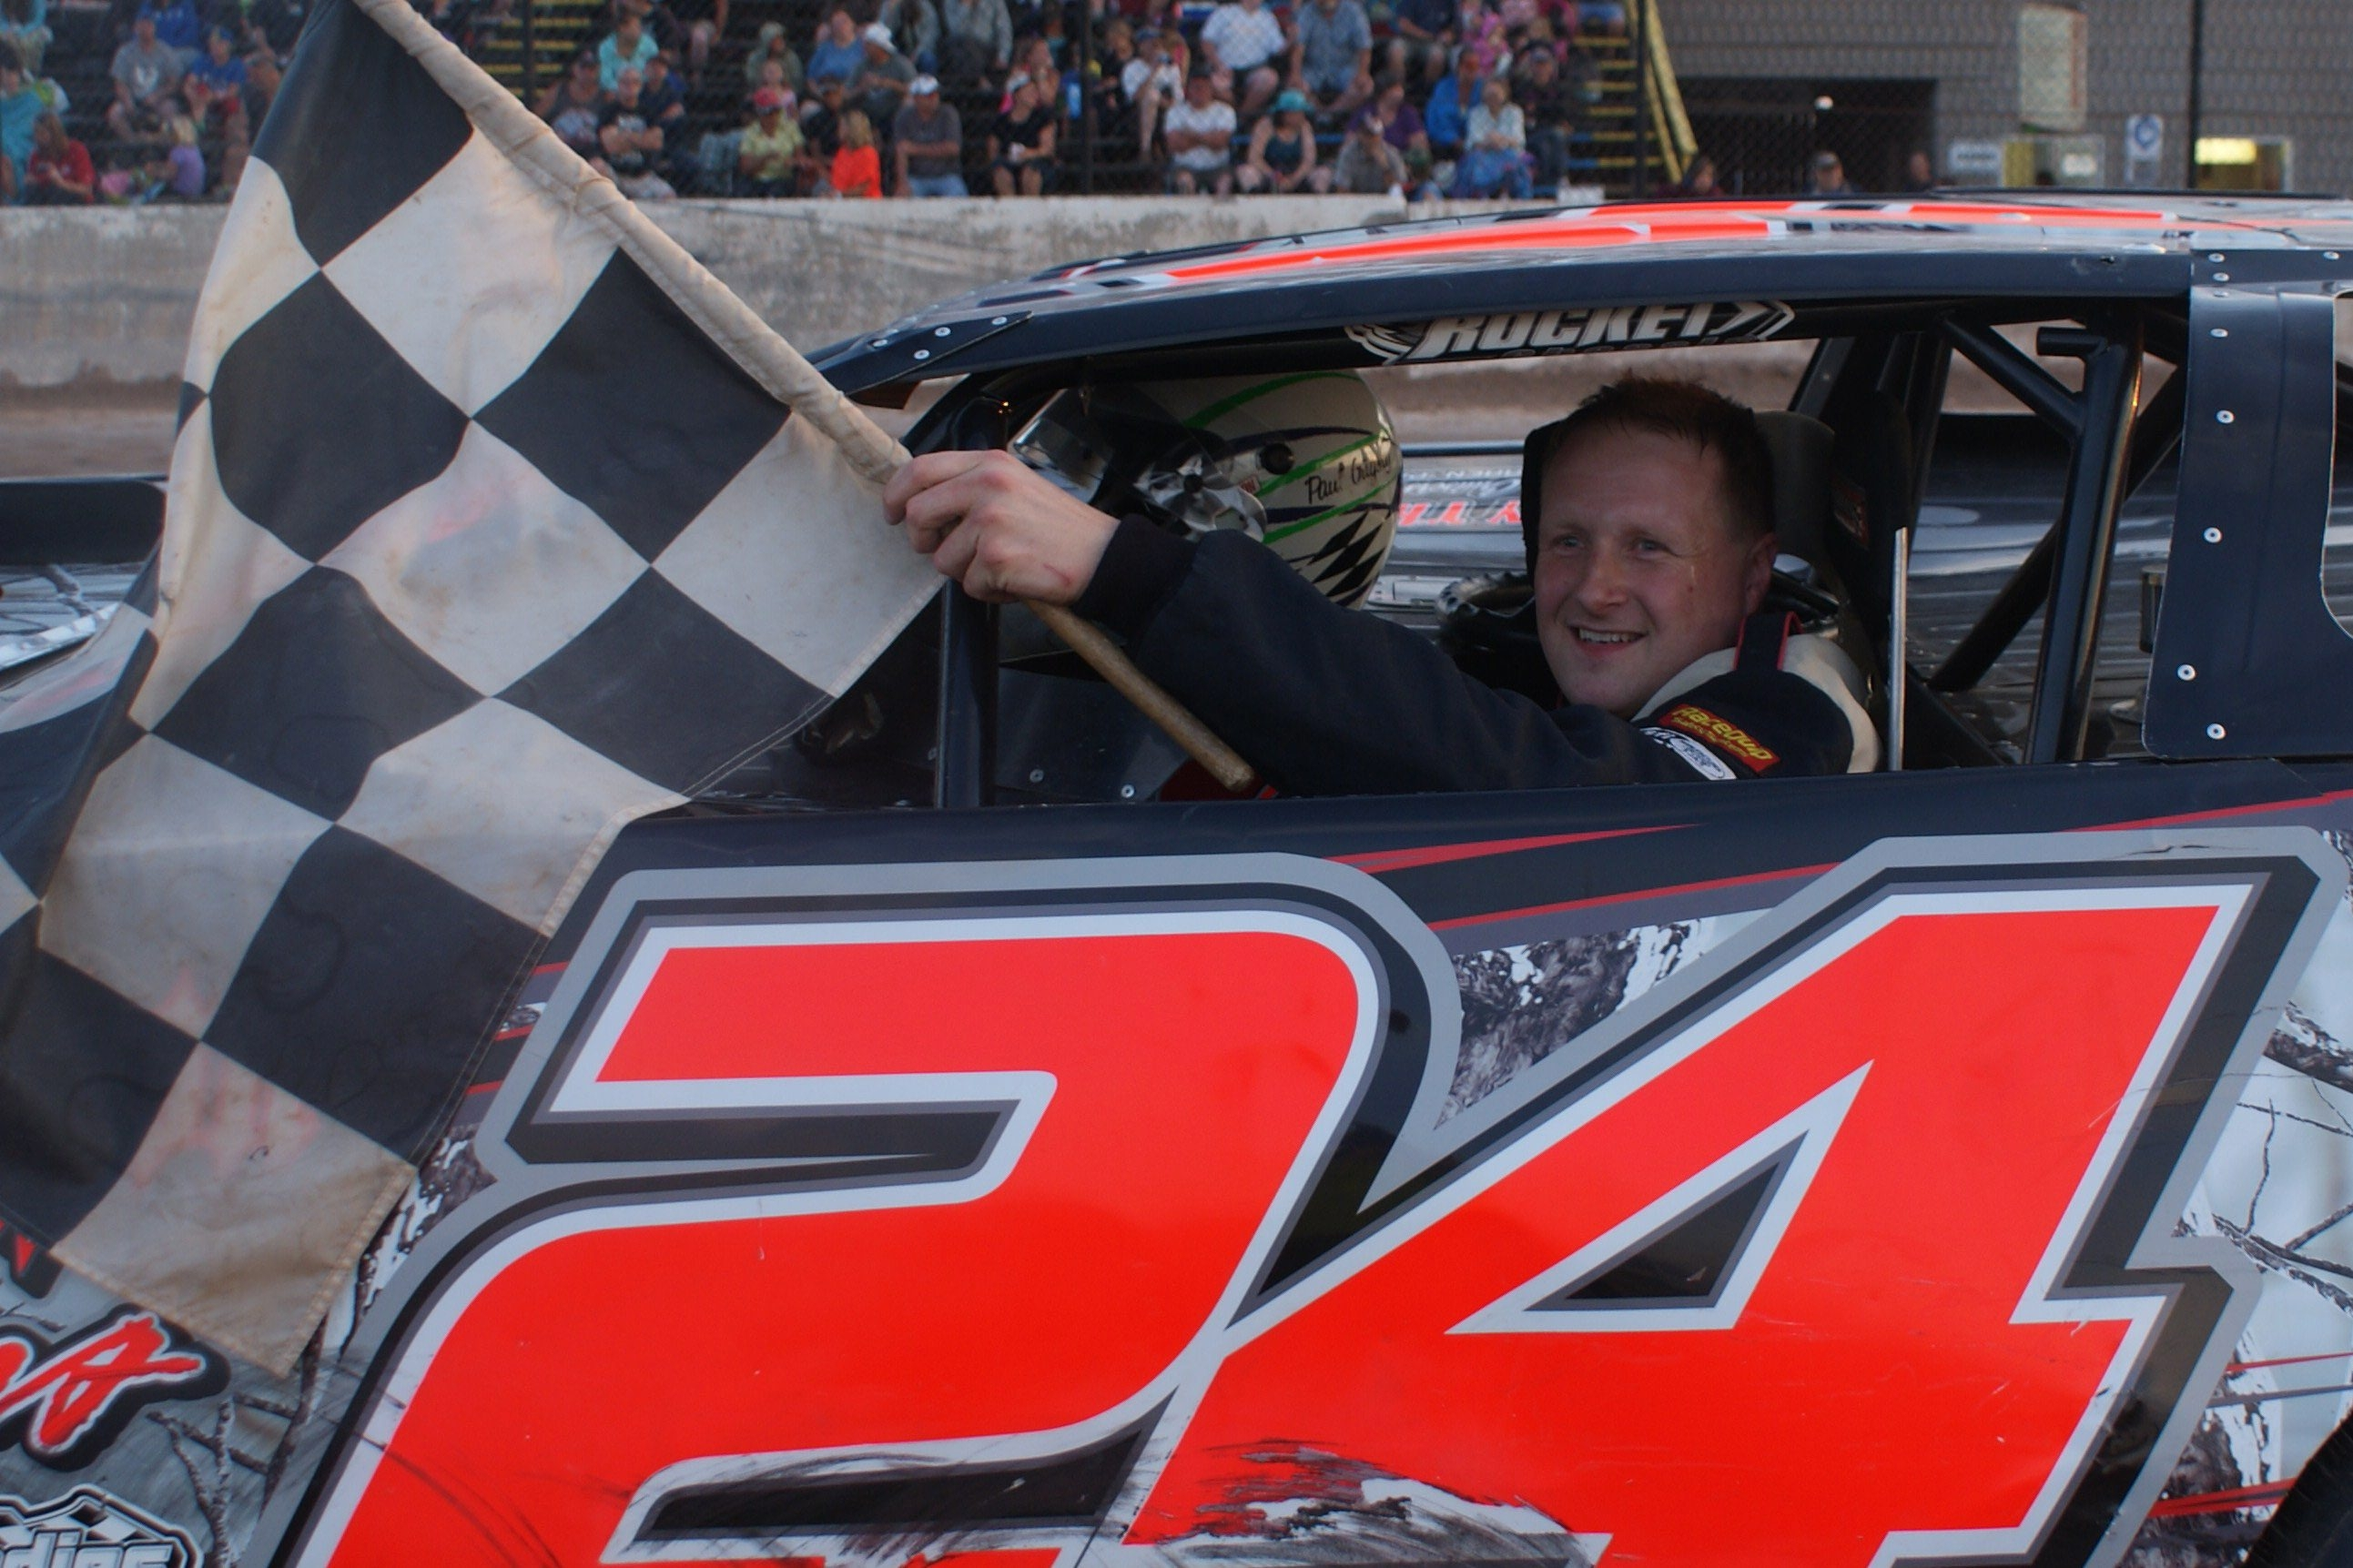 RUSH Late Model driver Paul Grigsby knows the border-crossing routine well because he's also a customs officer.